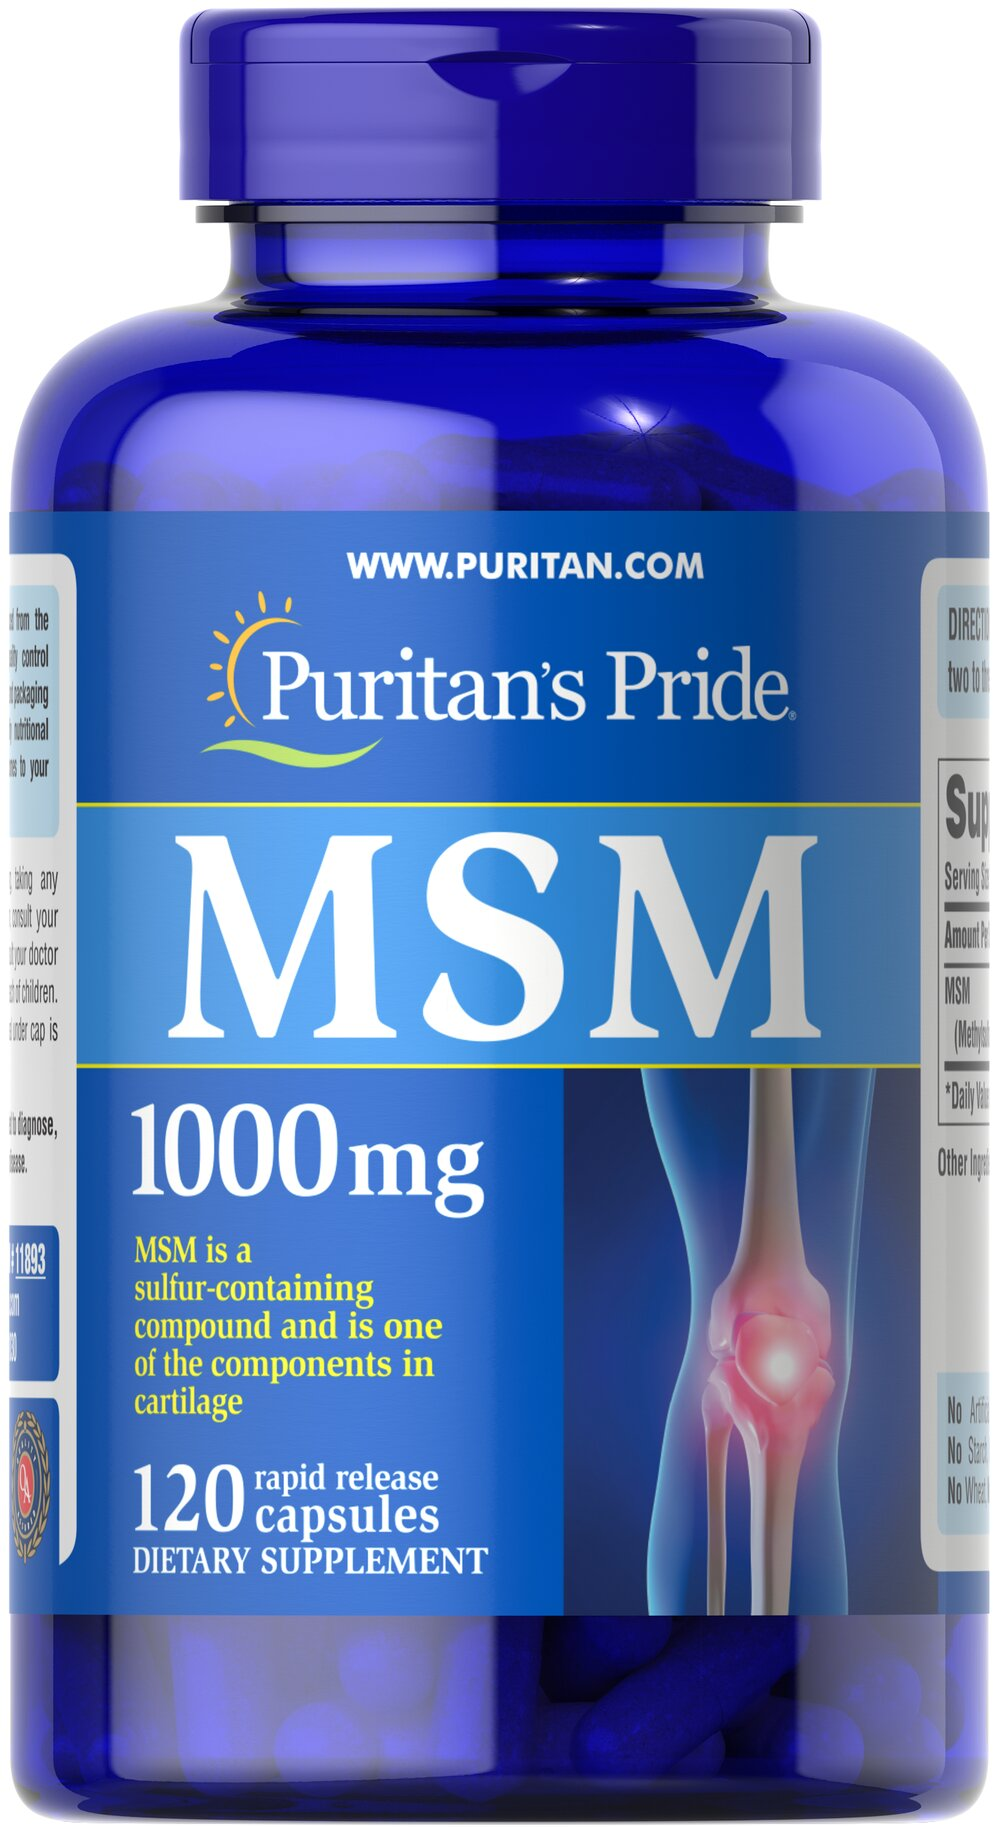 MSM 1000 mg <p><strong>Methylsulfonylmethane (MSM)</strong> is a natural source of sulfur, one of the major building blocks of glycosaminoglycans.** Glycosaminoglycans are key structural components in cartilage and play an important role in the maintenance of joint cartilage. ** </p> 120 Capsules 1000 mg $13.99